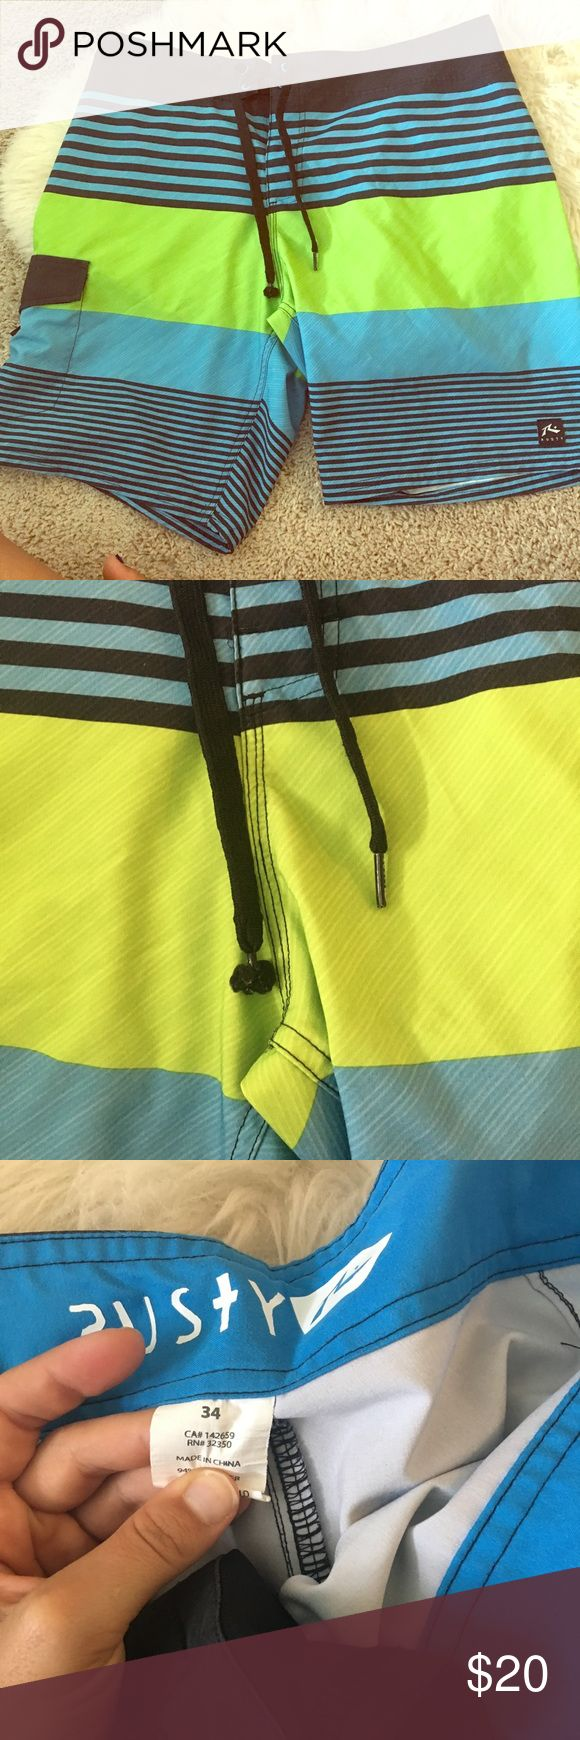 Men's bathing suit Great condition! The tie is a little messed up as shown in the photo, otherwise amazing condition. Rusty Swim